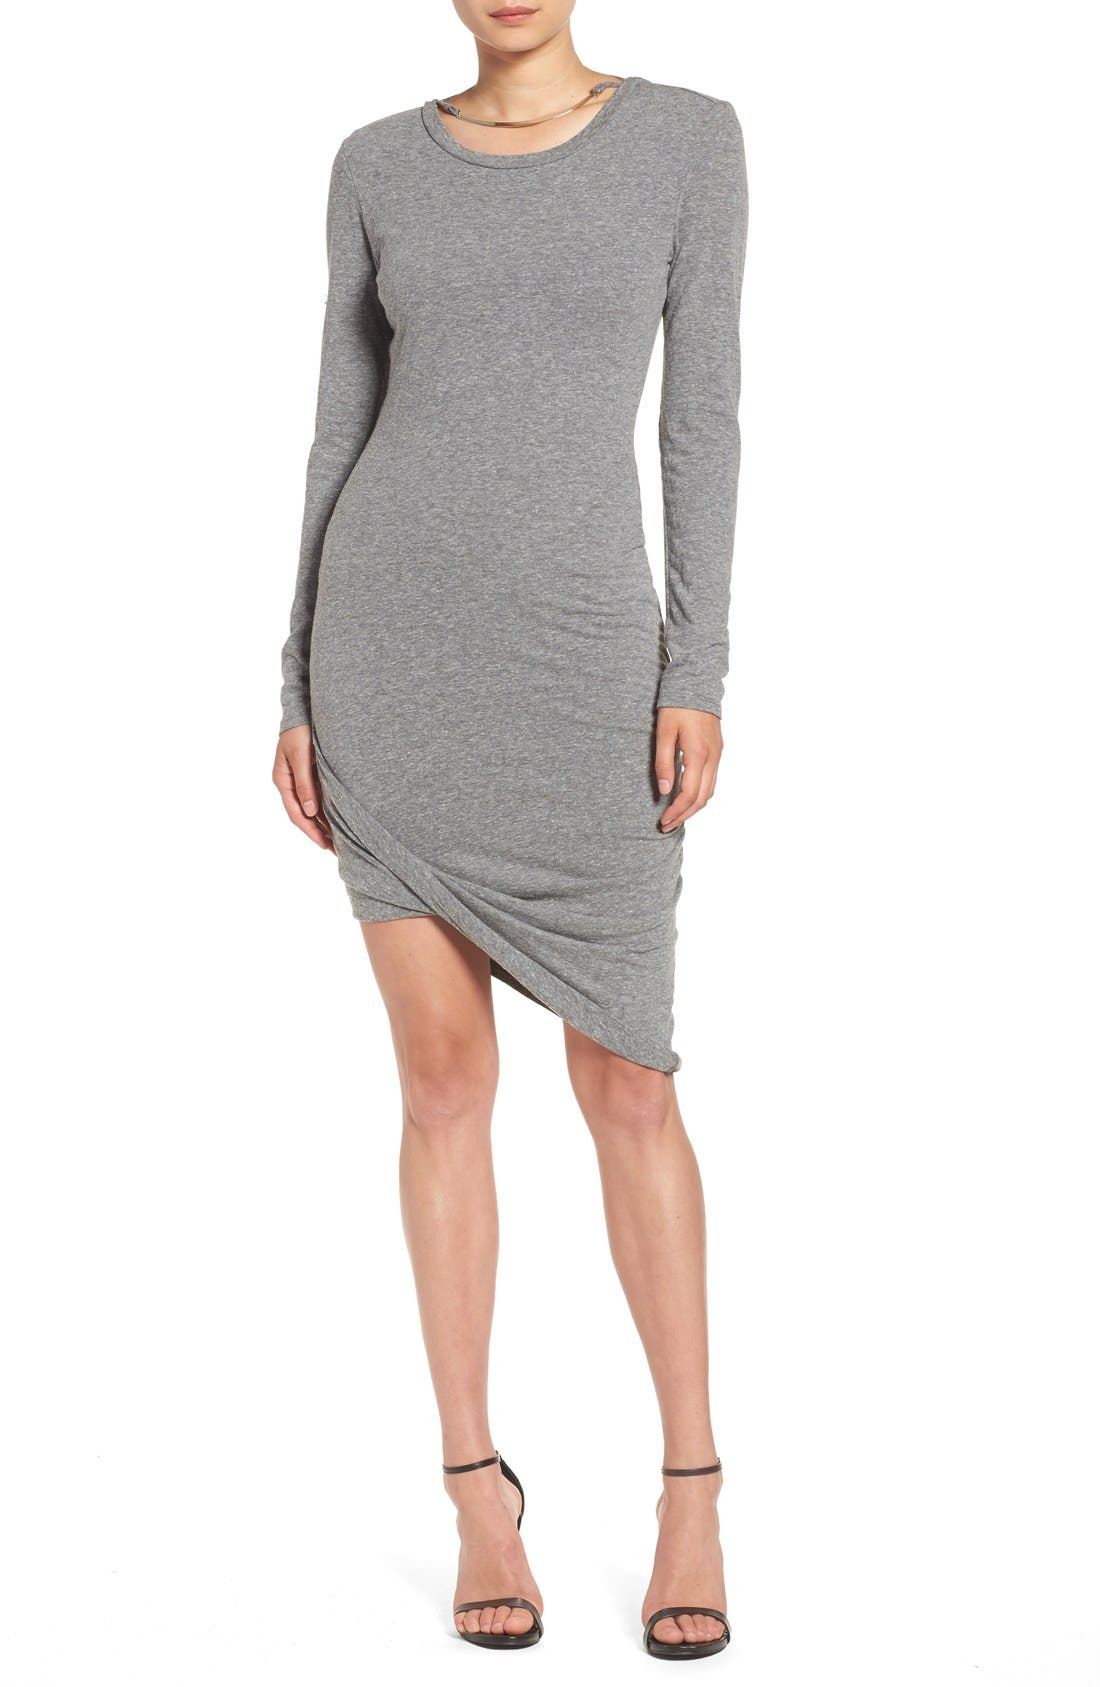 Alternate Image 1 Selected - Pam & Gela Asymmetrical Hem T-Shirt Dress